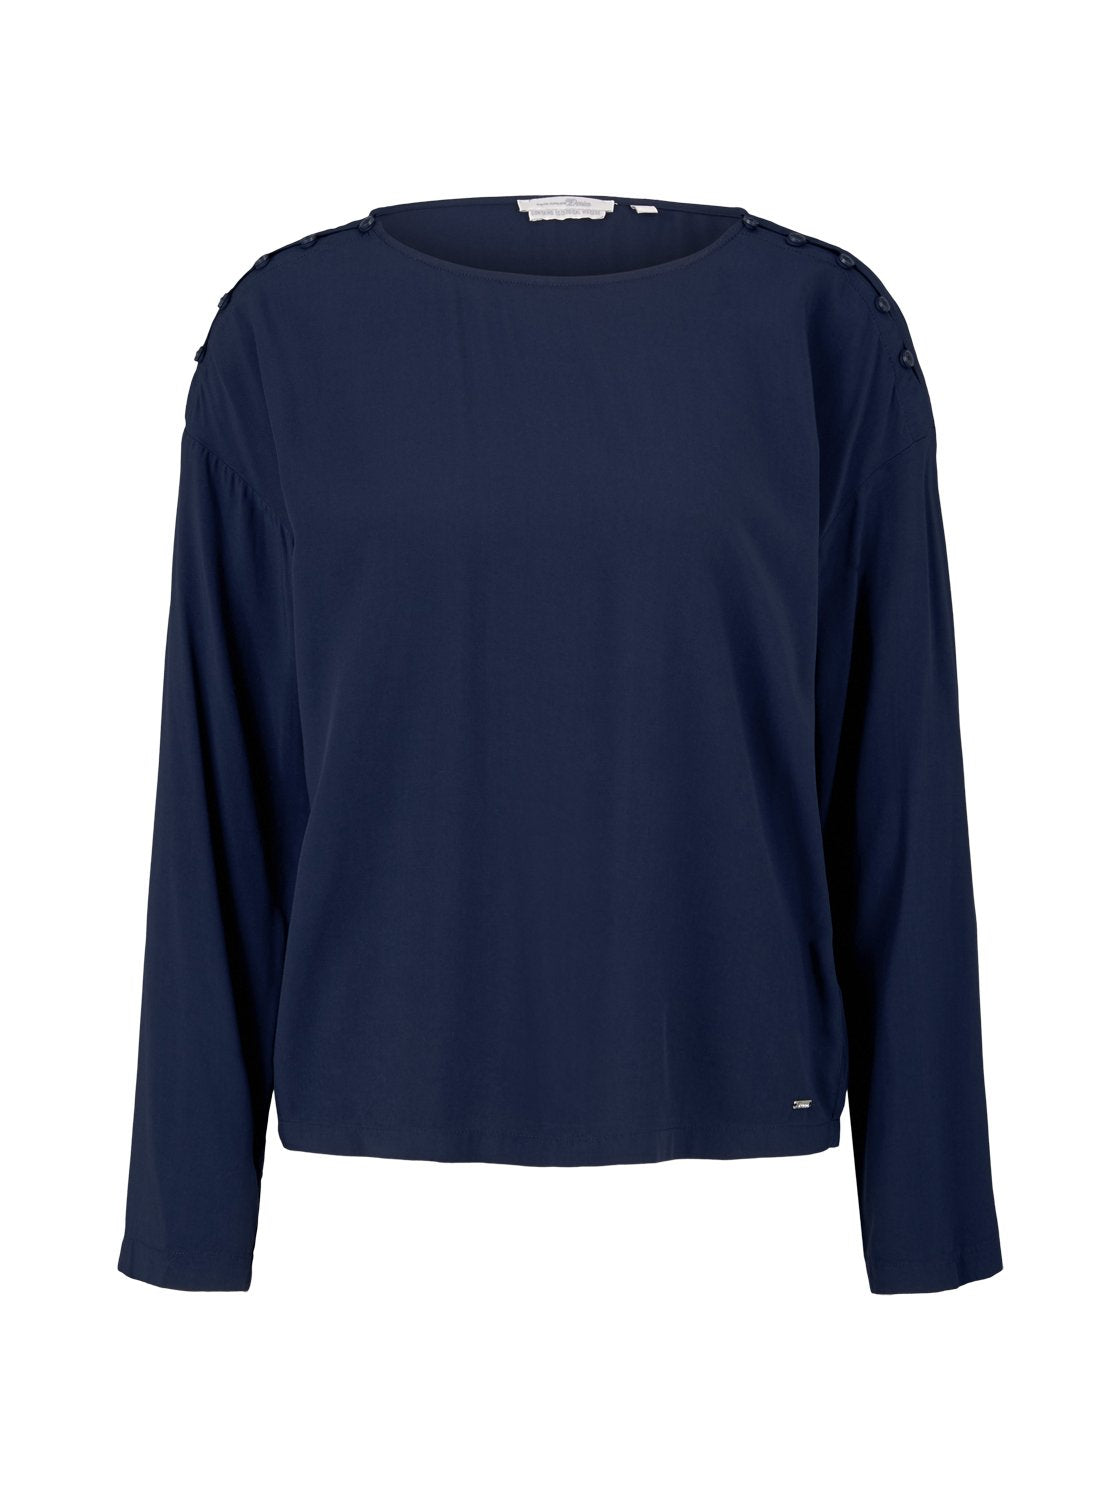 Tom Tailor navy blouse 1023019